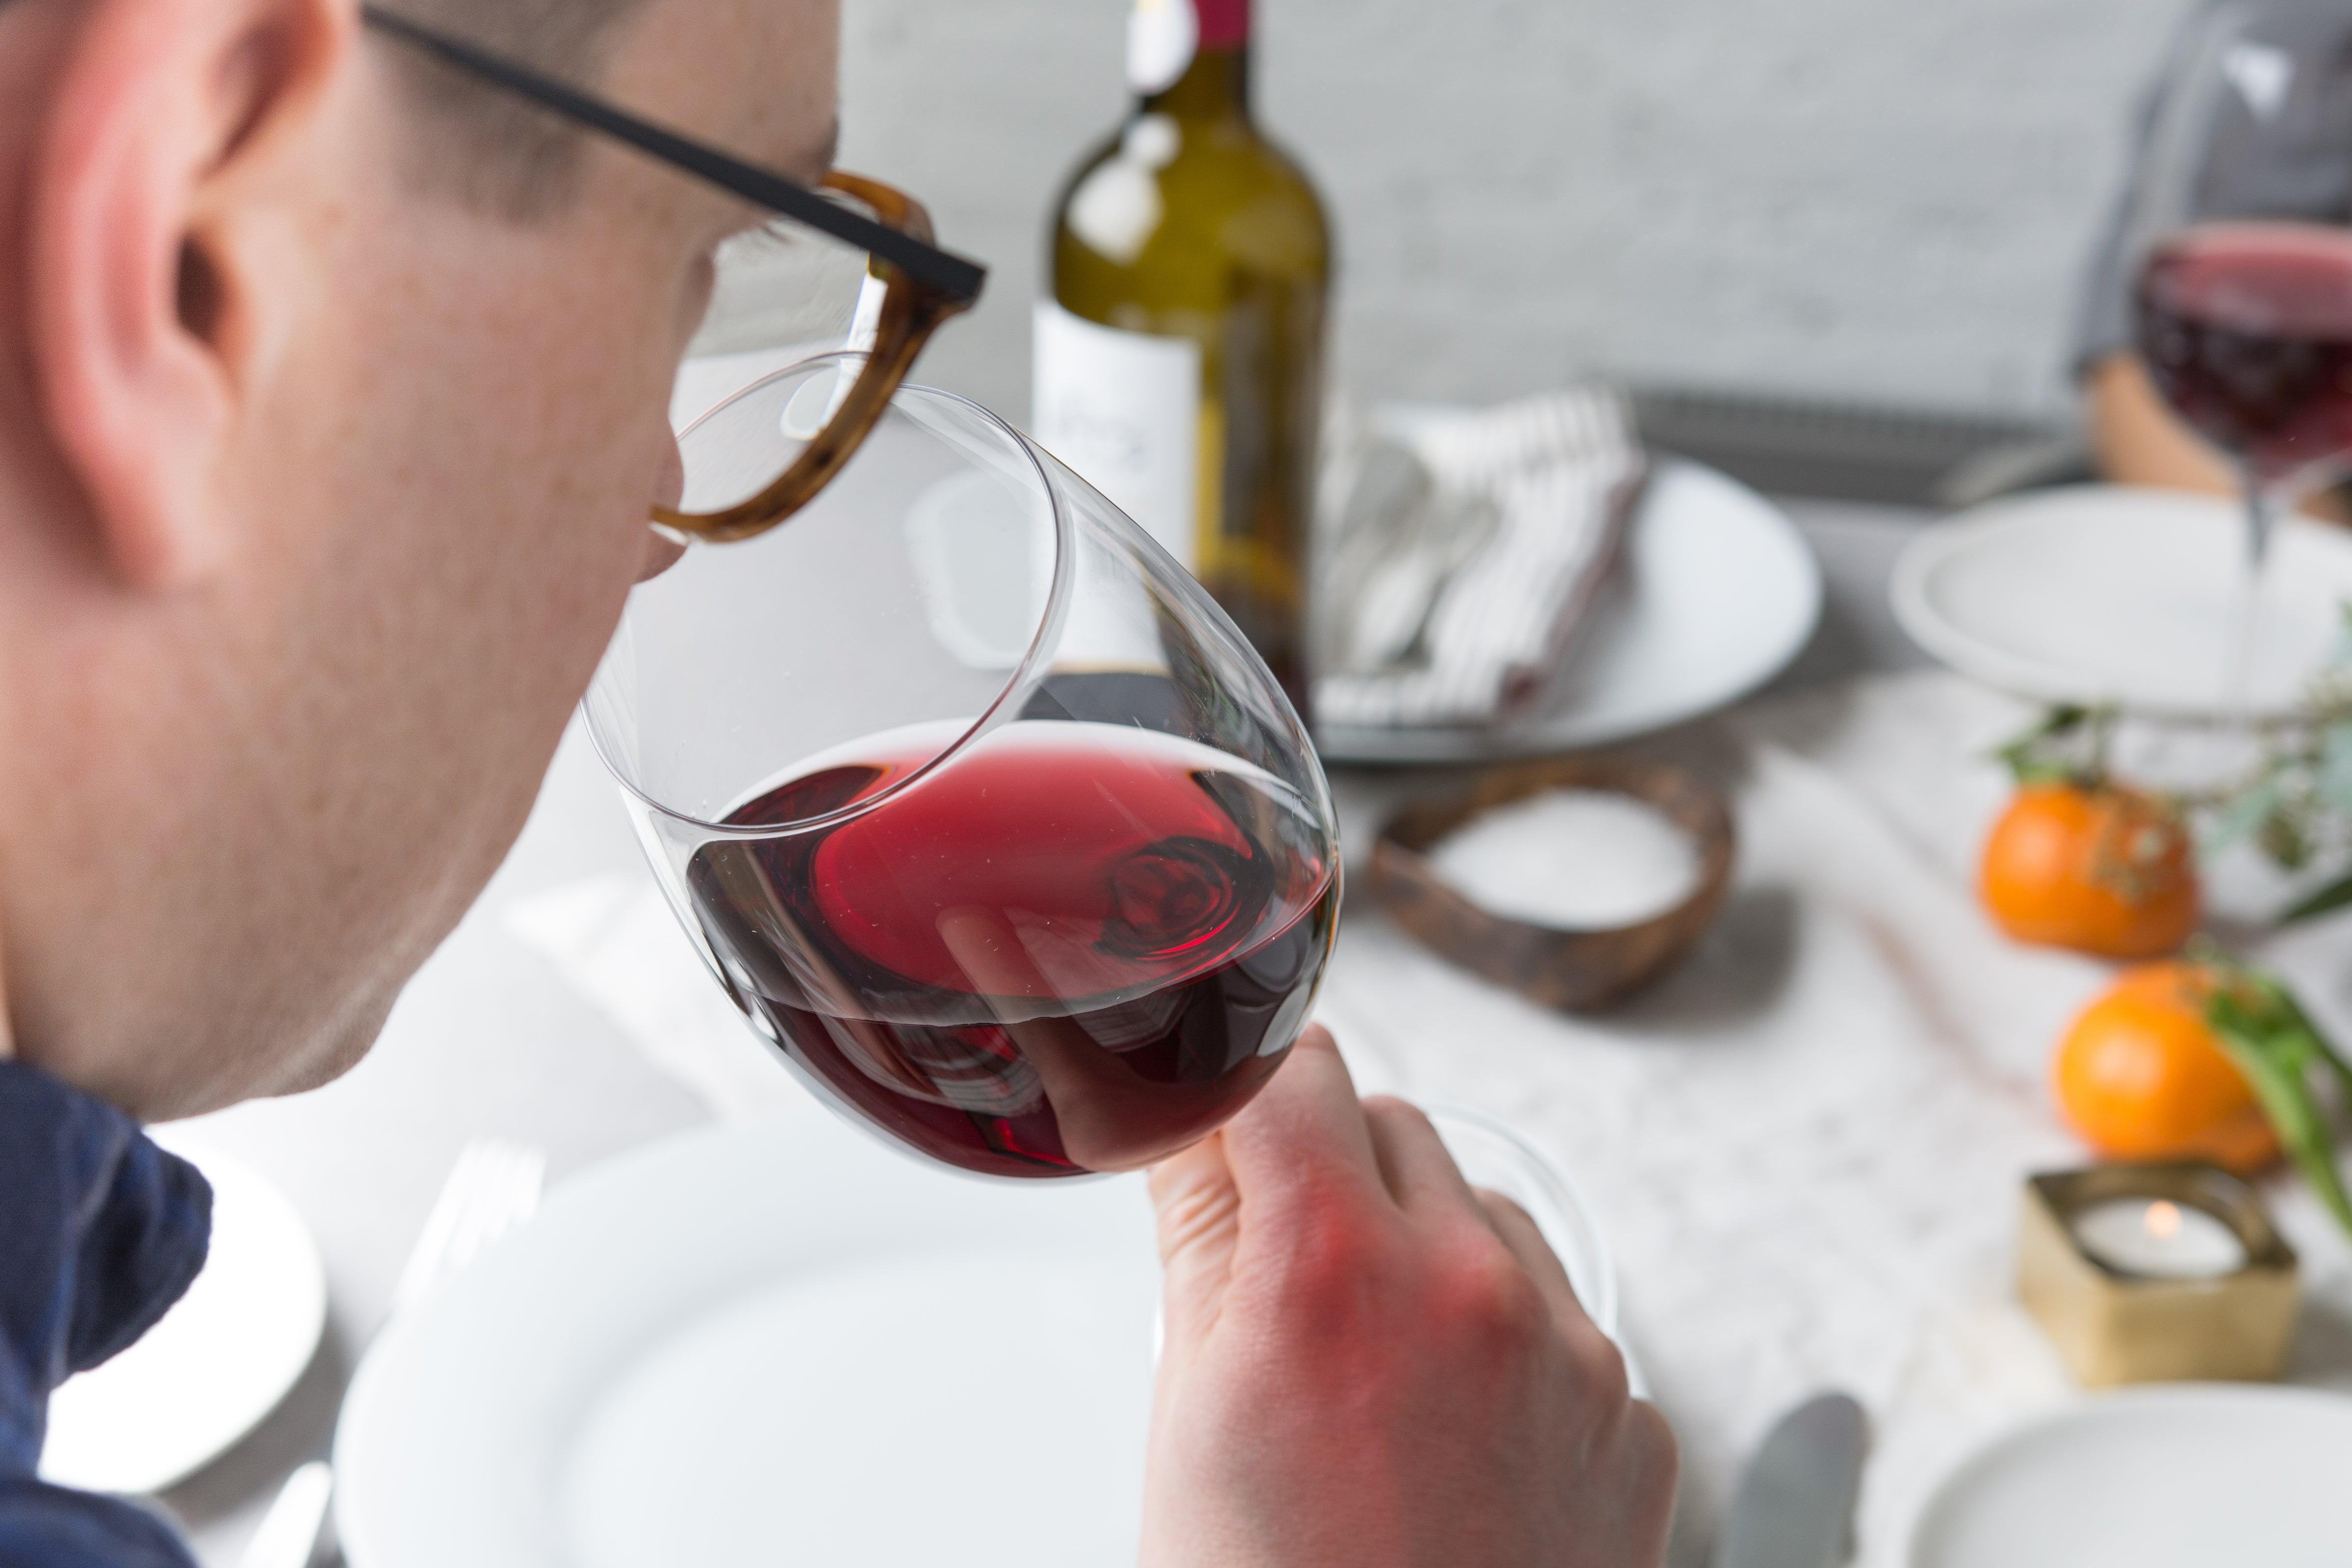 sniffing wine in a Libbey glass